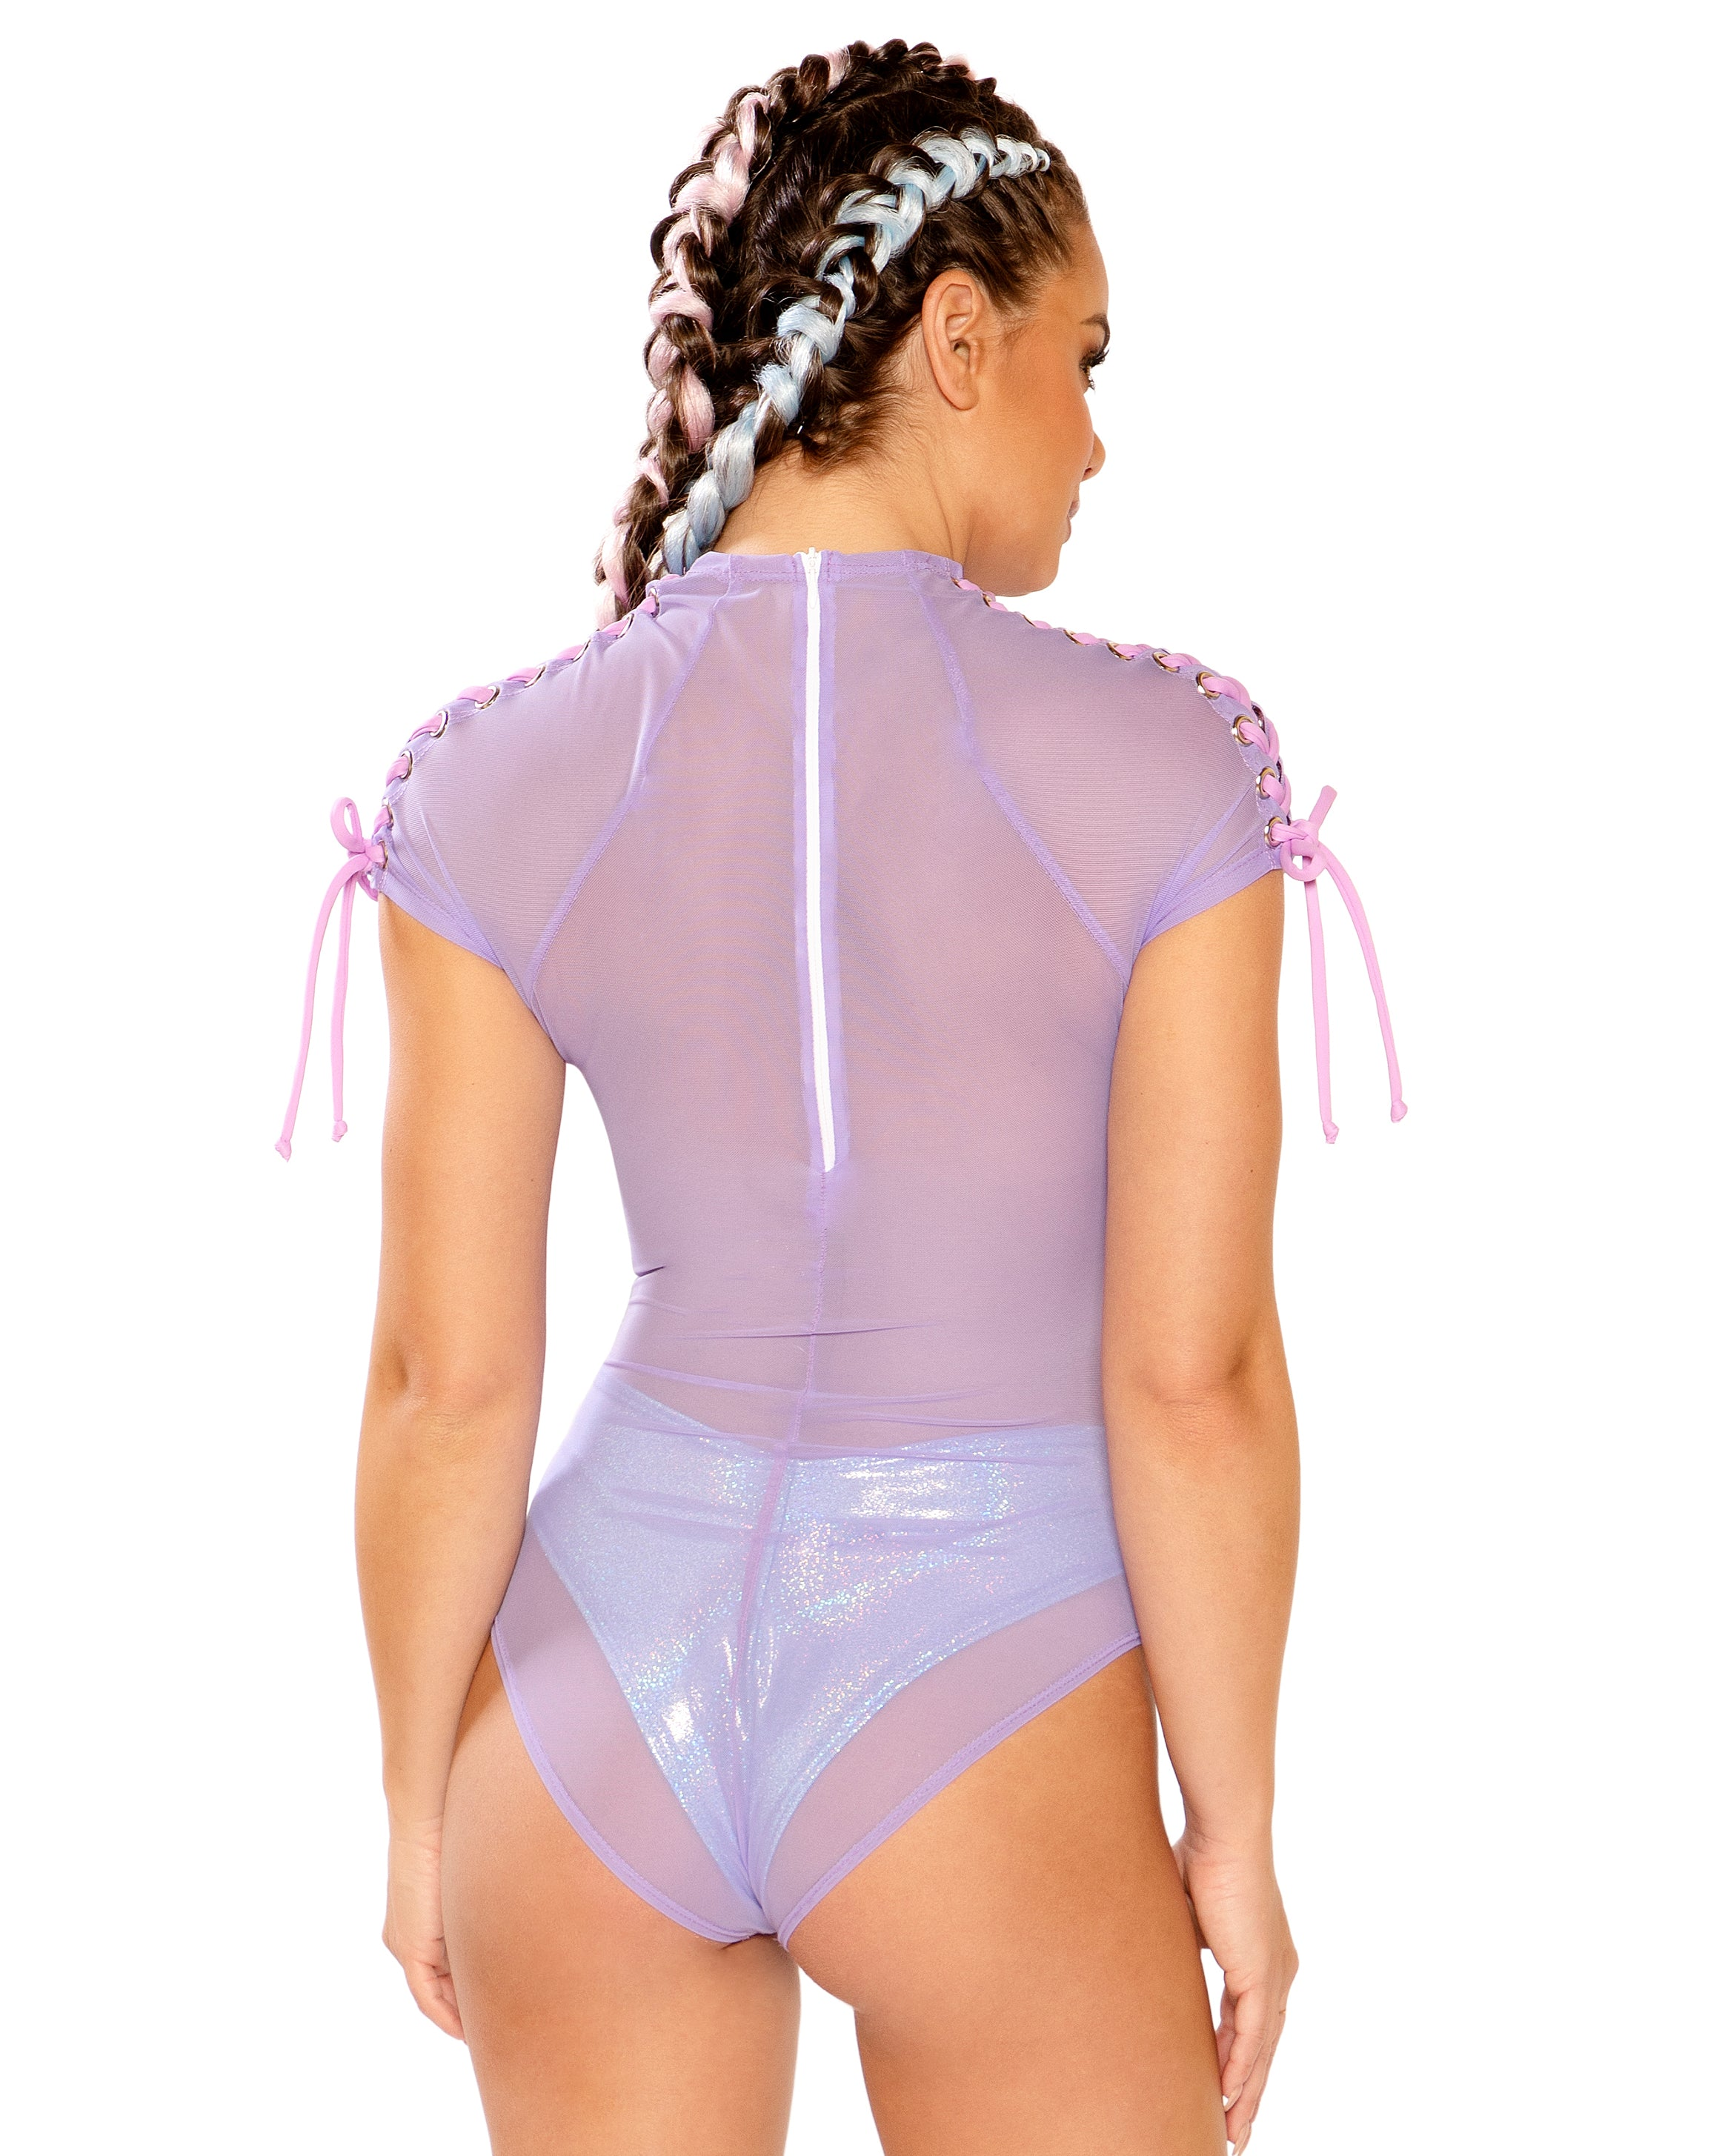 Tie Me Up Lace-Up Shoulder w/ Grommets Mesh Rave Bodysuit